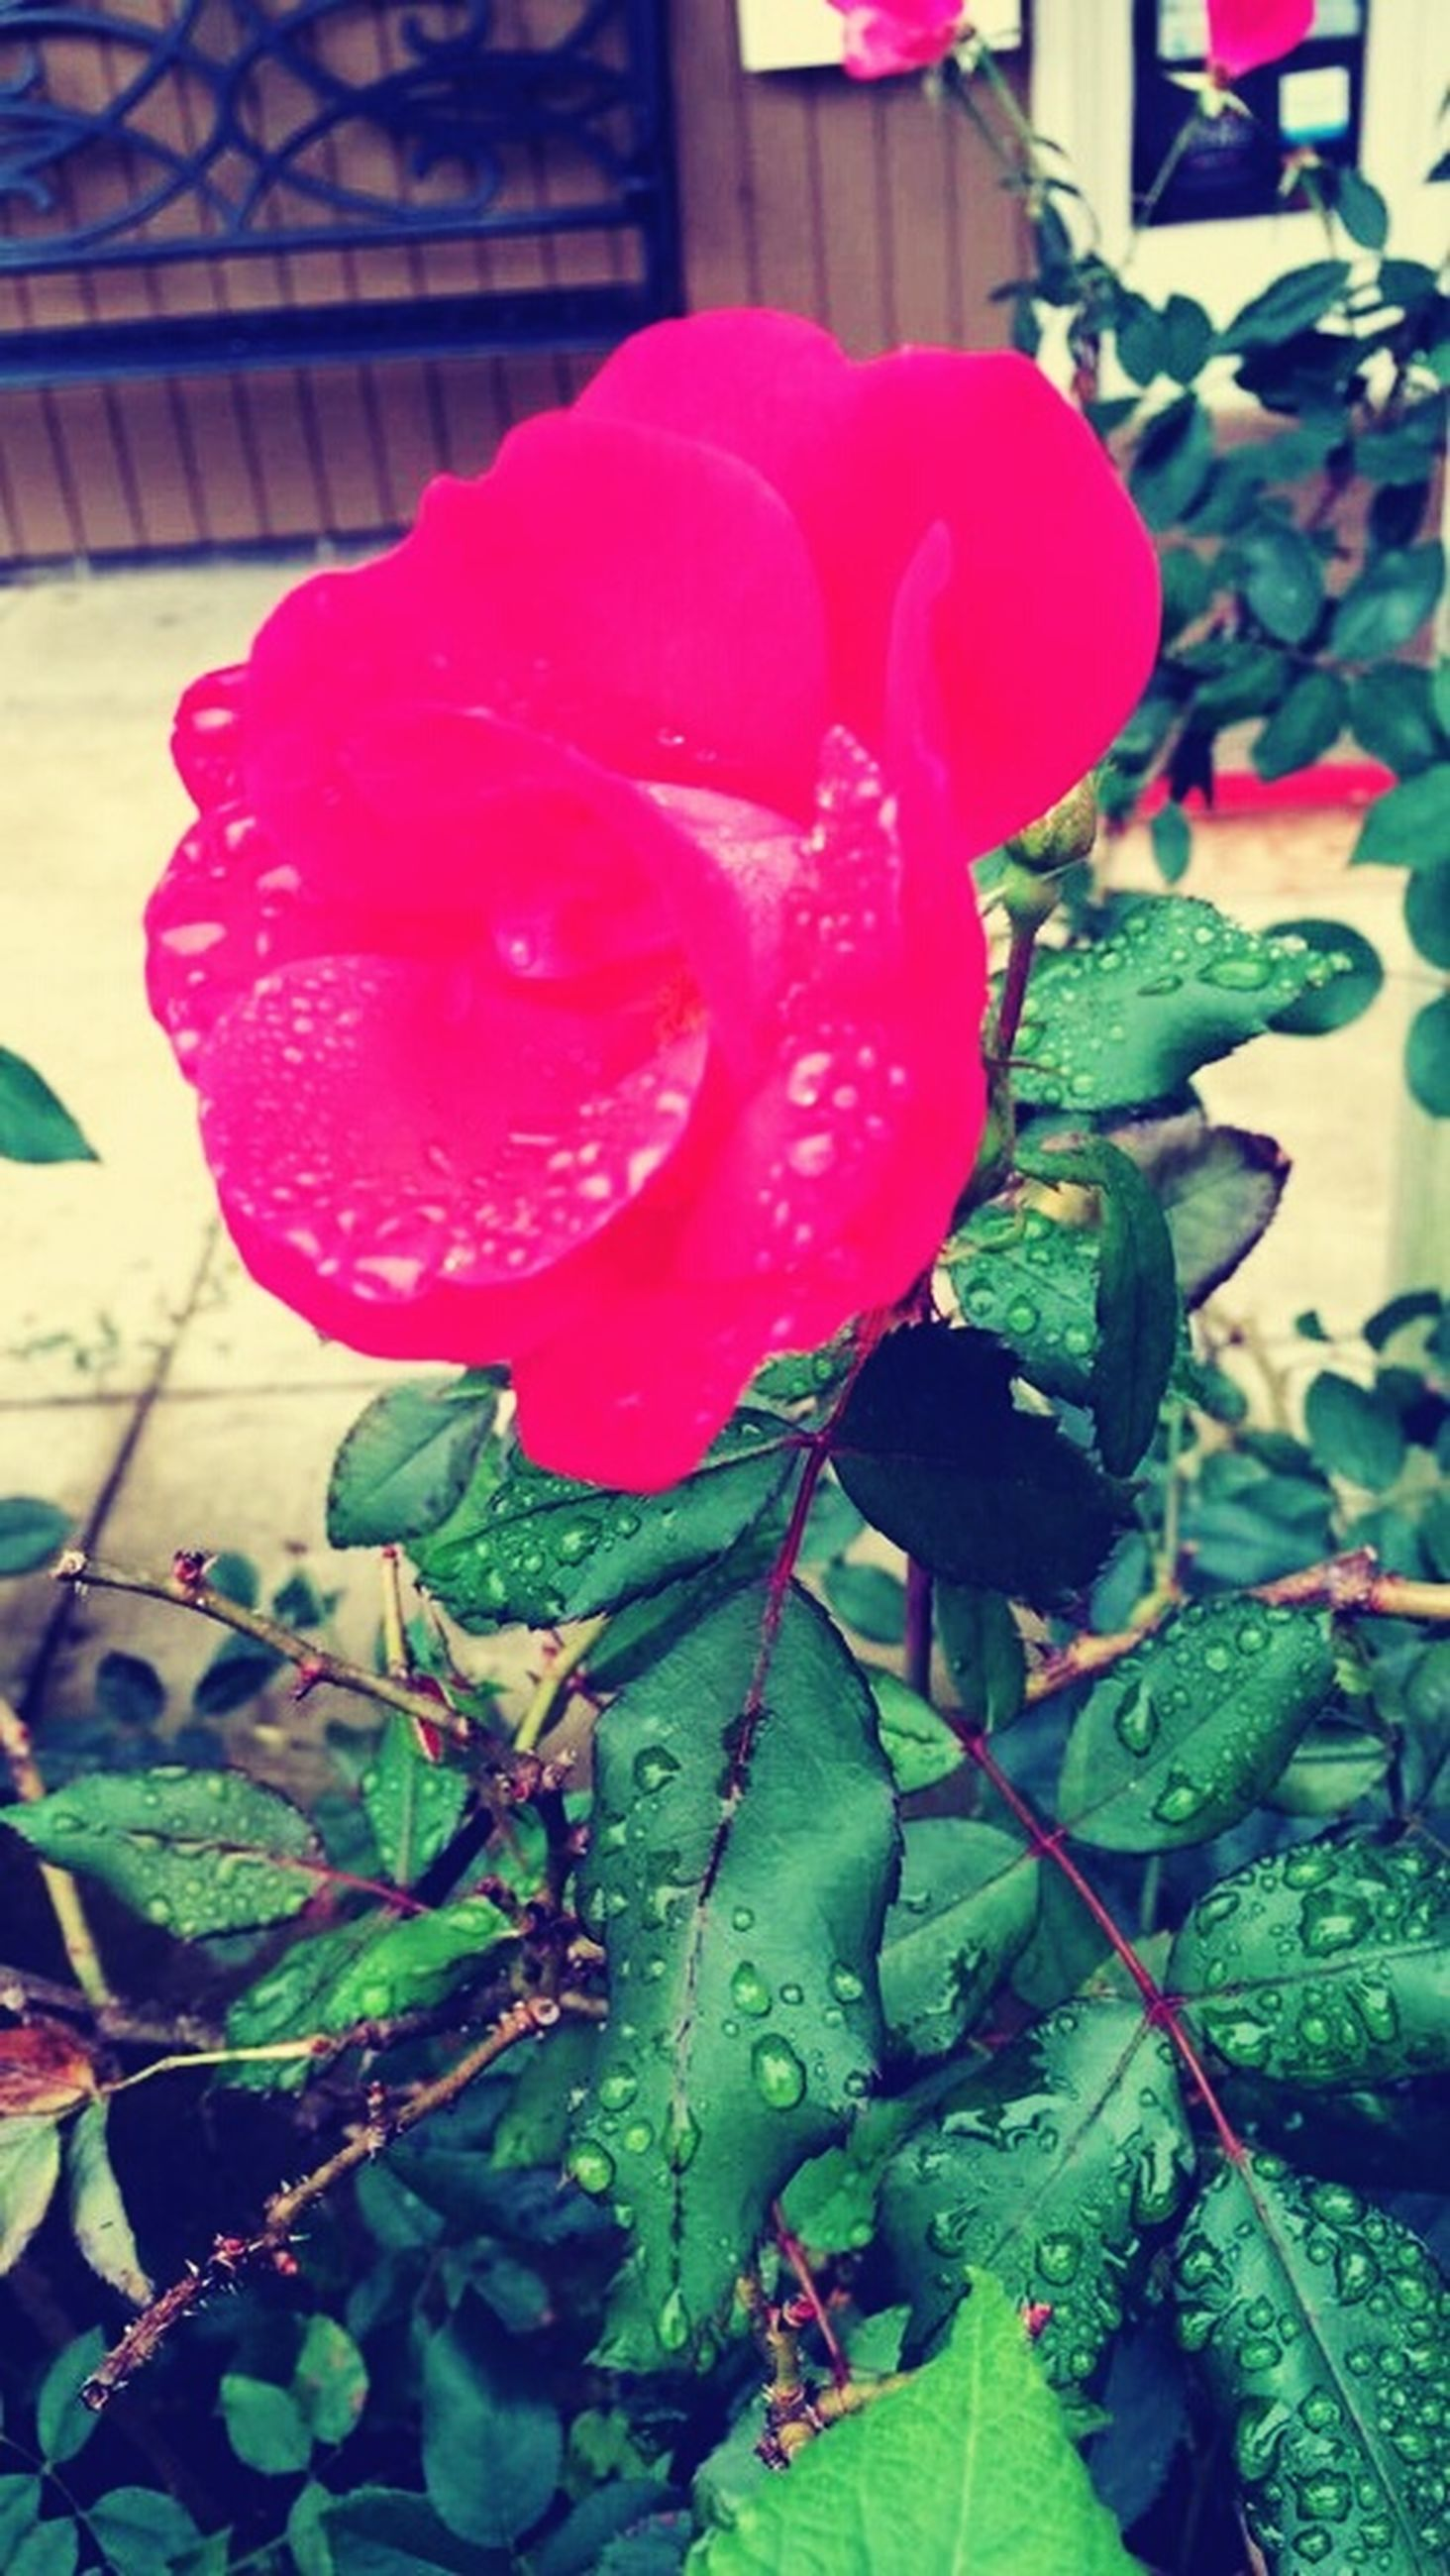 flower, petal, fragility, freshness, flower head, leaf, rose - flower, growth, plant, beauty in nature, close-up, pink color, blooming, nature, single flower, red, focus on foreground, rose, in bloom, day